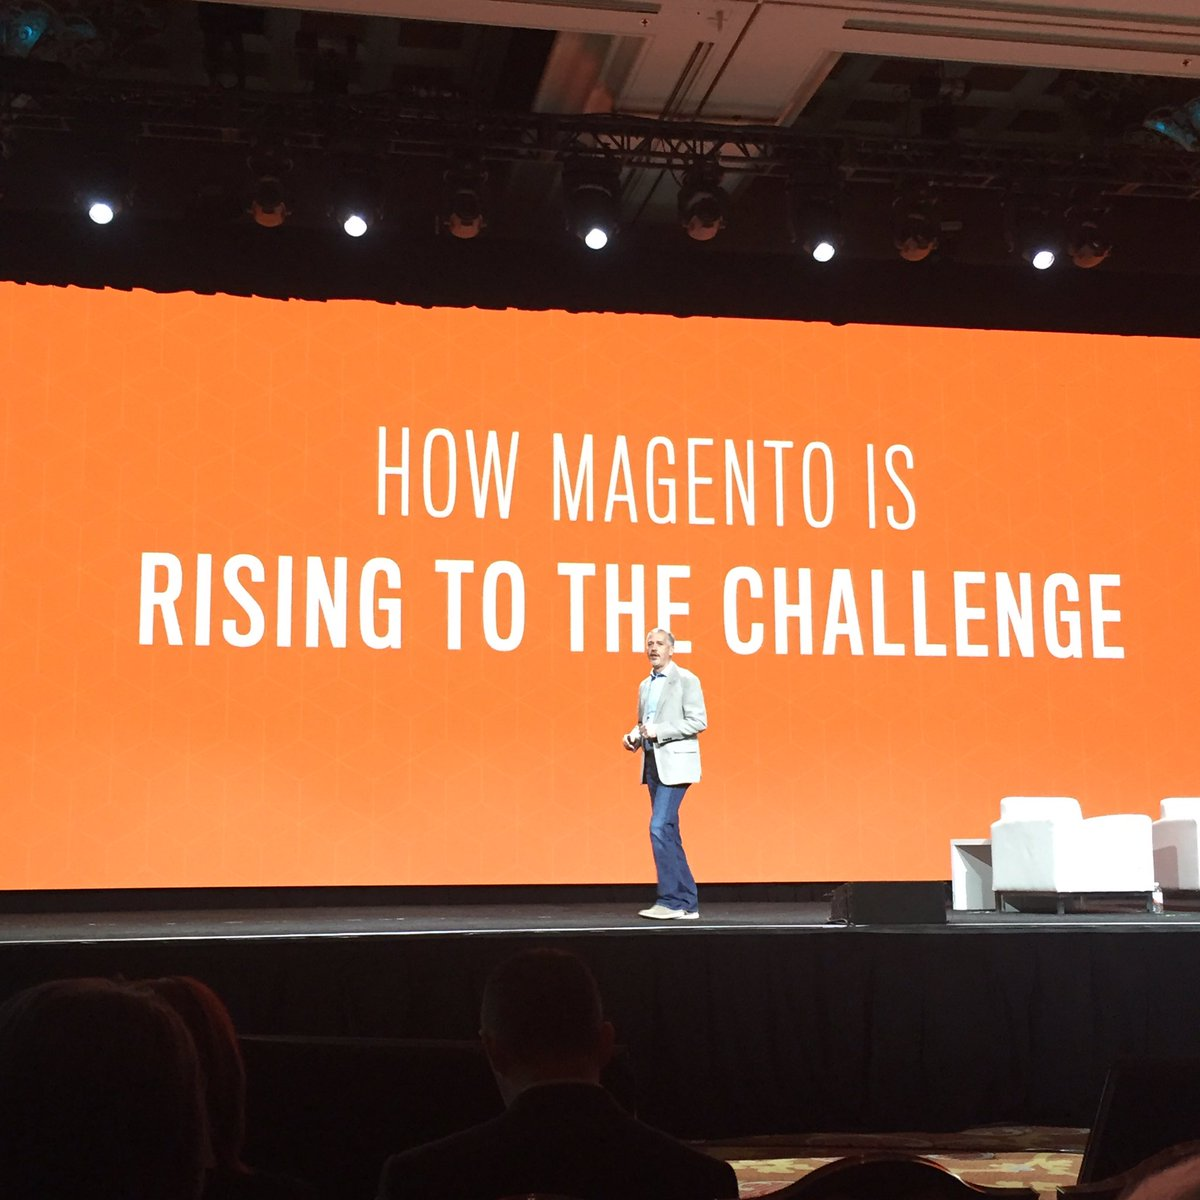 PeterMintchev: 'We want to be a partner and not a vendor.' - @jasonwoosley_mg at #MagentoImagine https://t.co/YLex4Z9M94